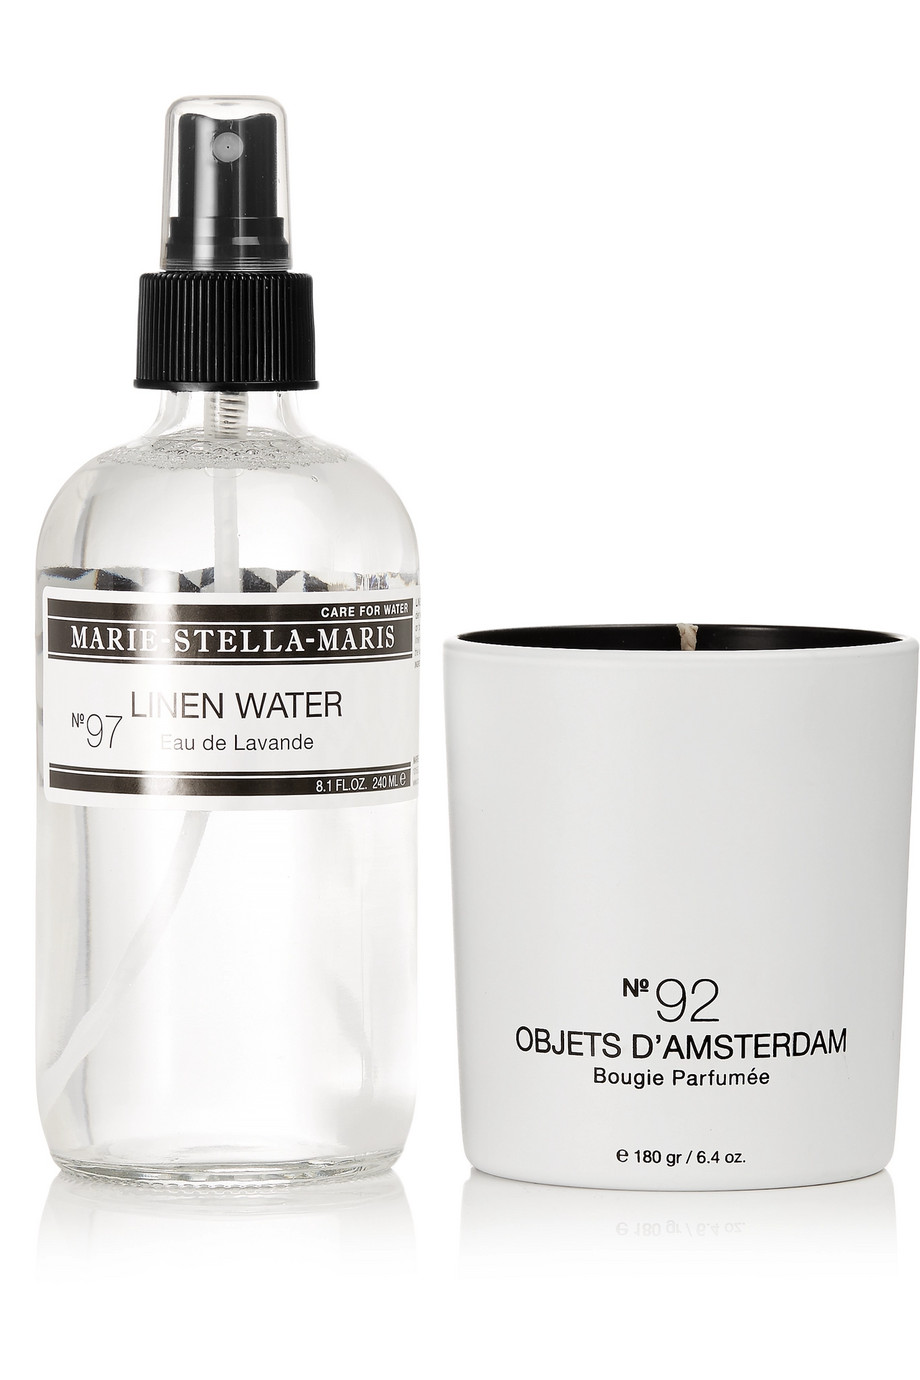 MARIE-STELLA-MARIS, Home Kit, £55, available at Net-A-Porter - Bring this kit into your home to bring a sense of calm and relaxation.Not only does this set include a chic candle, which has delicious notes of White Tea, Bergamot and Lemon for an instant room-refresh, it also contains the 'No. 97 Eau de Lavande' spray which releases a soothing sent of Lavender, Eucalypus and Musk - the perfect calming spray for our bed sheets and pillows.